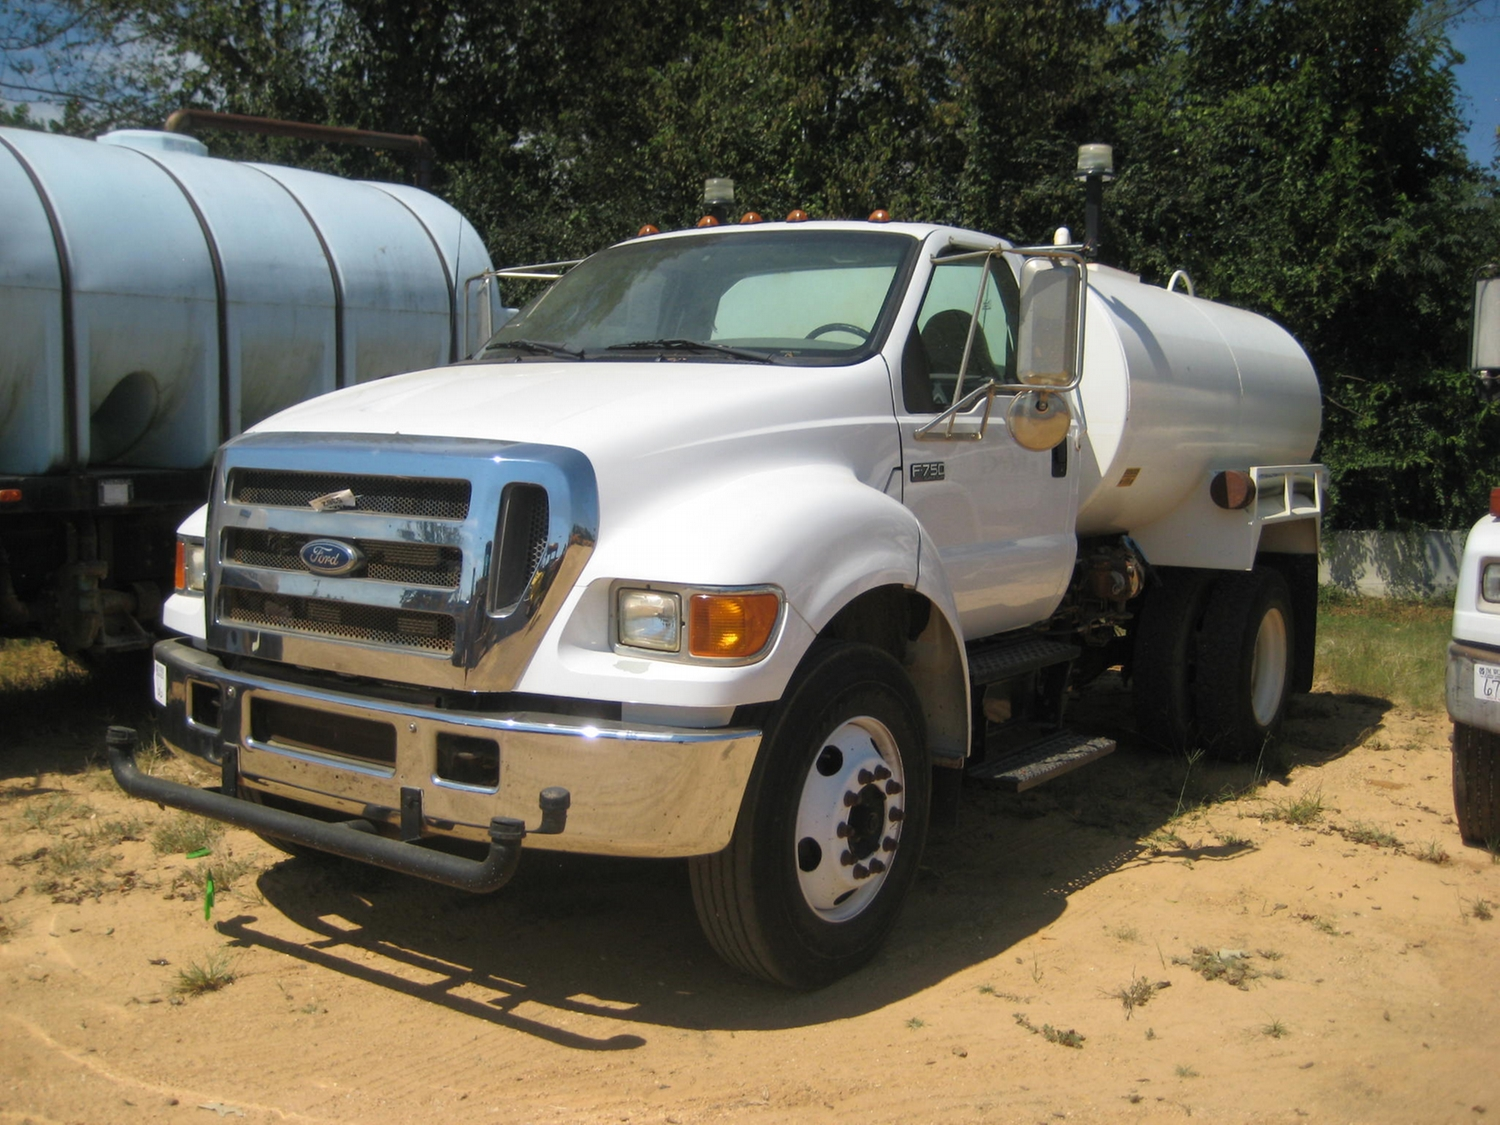 medium resolution of image 1 2005 ford f750 super duty s a water truck